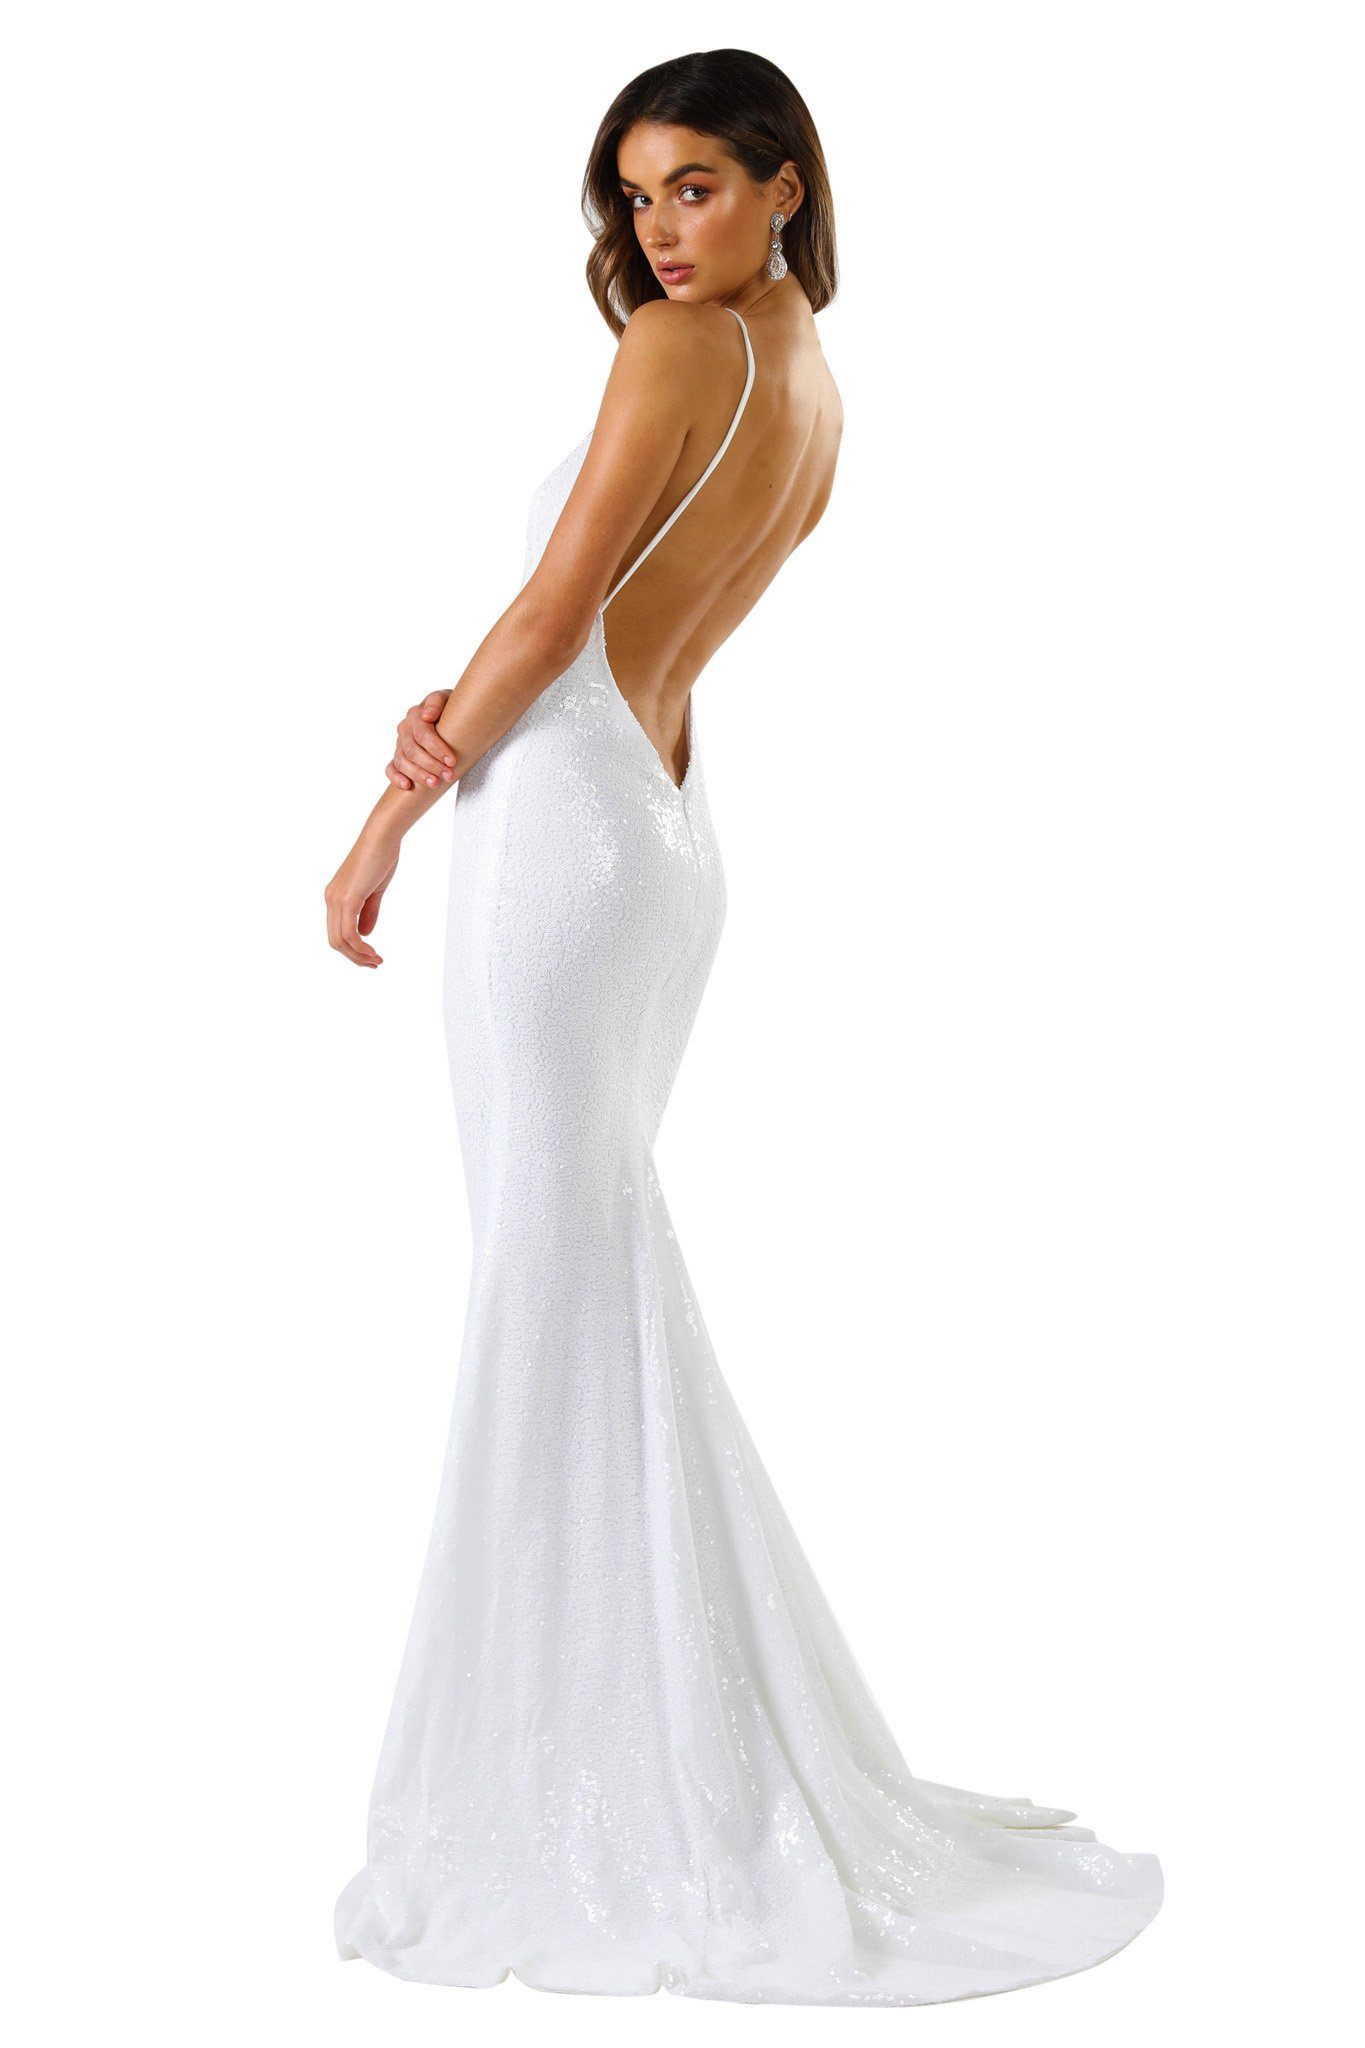 V Shaped Backless Design of Fitted White Sequin Formal Wedding Sleeveless Gown featuring Deep V Neck, Thin Shoulder Straps, and Long Train